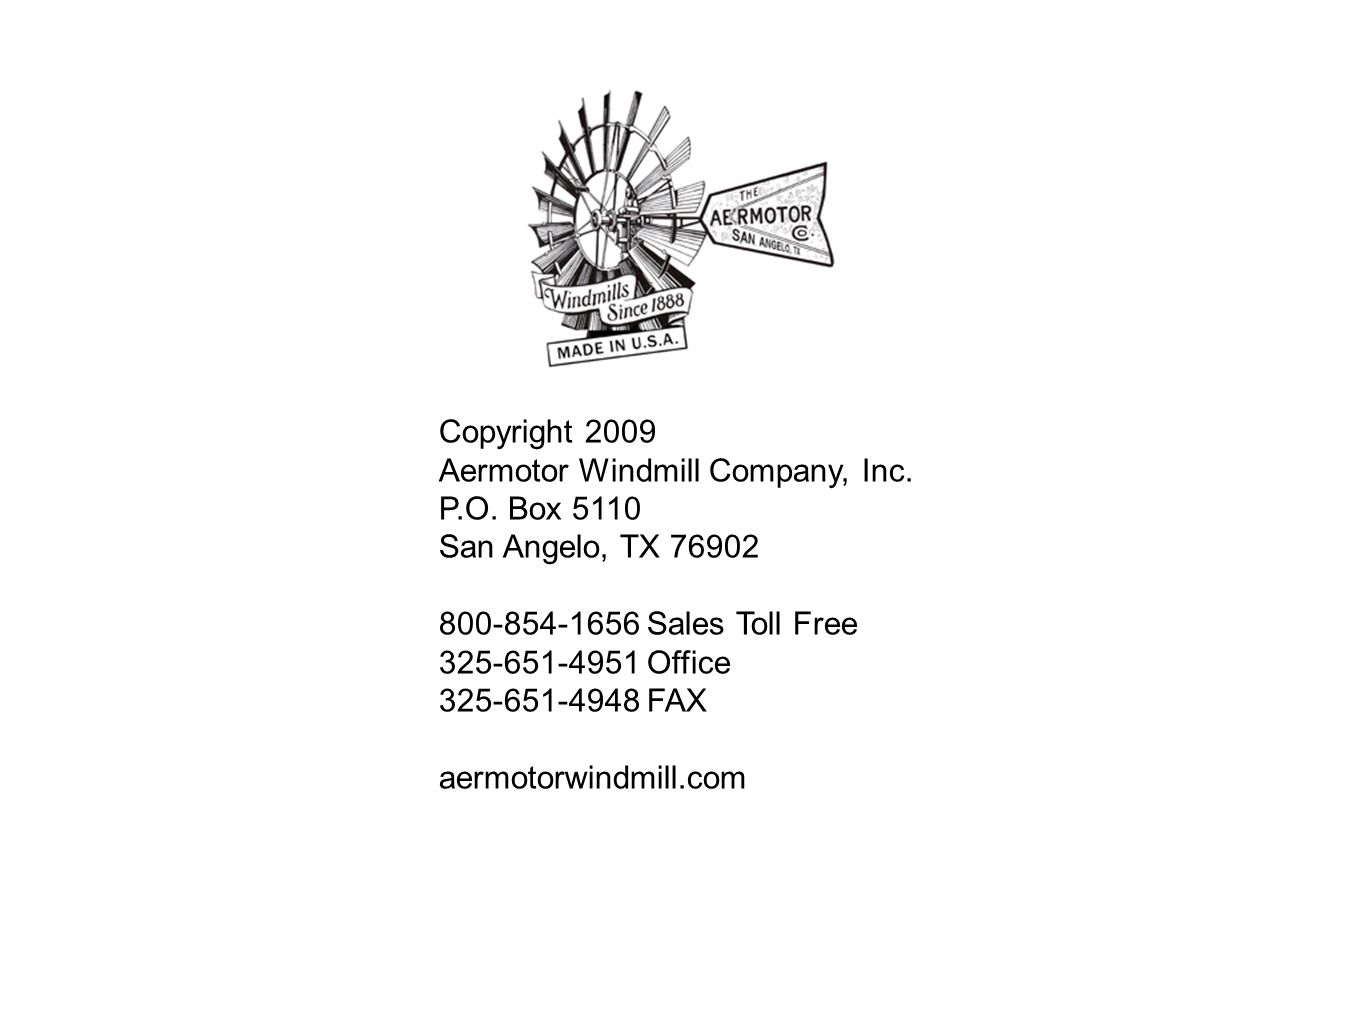 Copyright 2009 Aermotor Windmill Company, Inc. P.O. Box 5110 San Angelo, TX 76902 800-854-1656 Sales Toll Free 325-651-4951 Office 325-651-4948 FAX ae